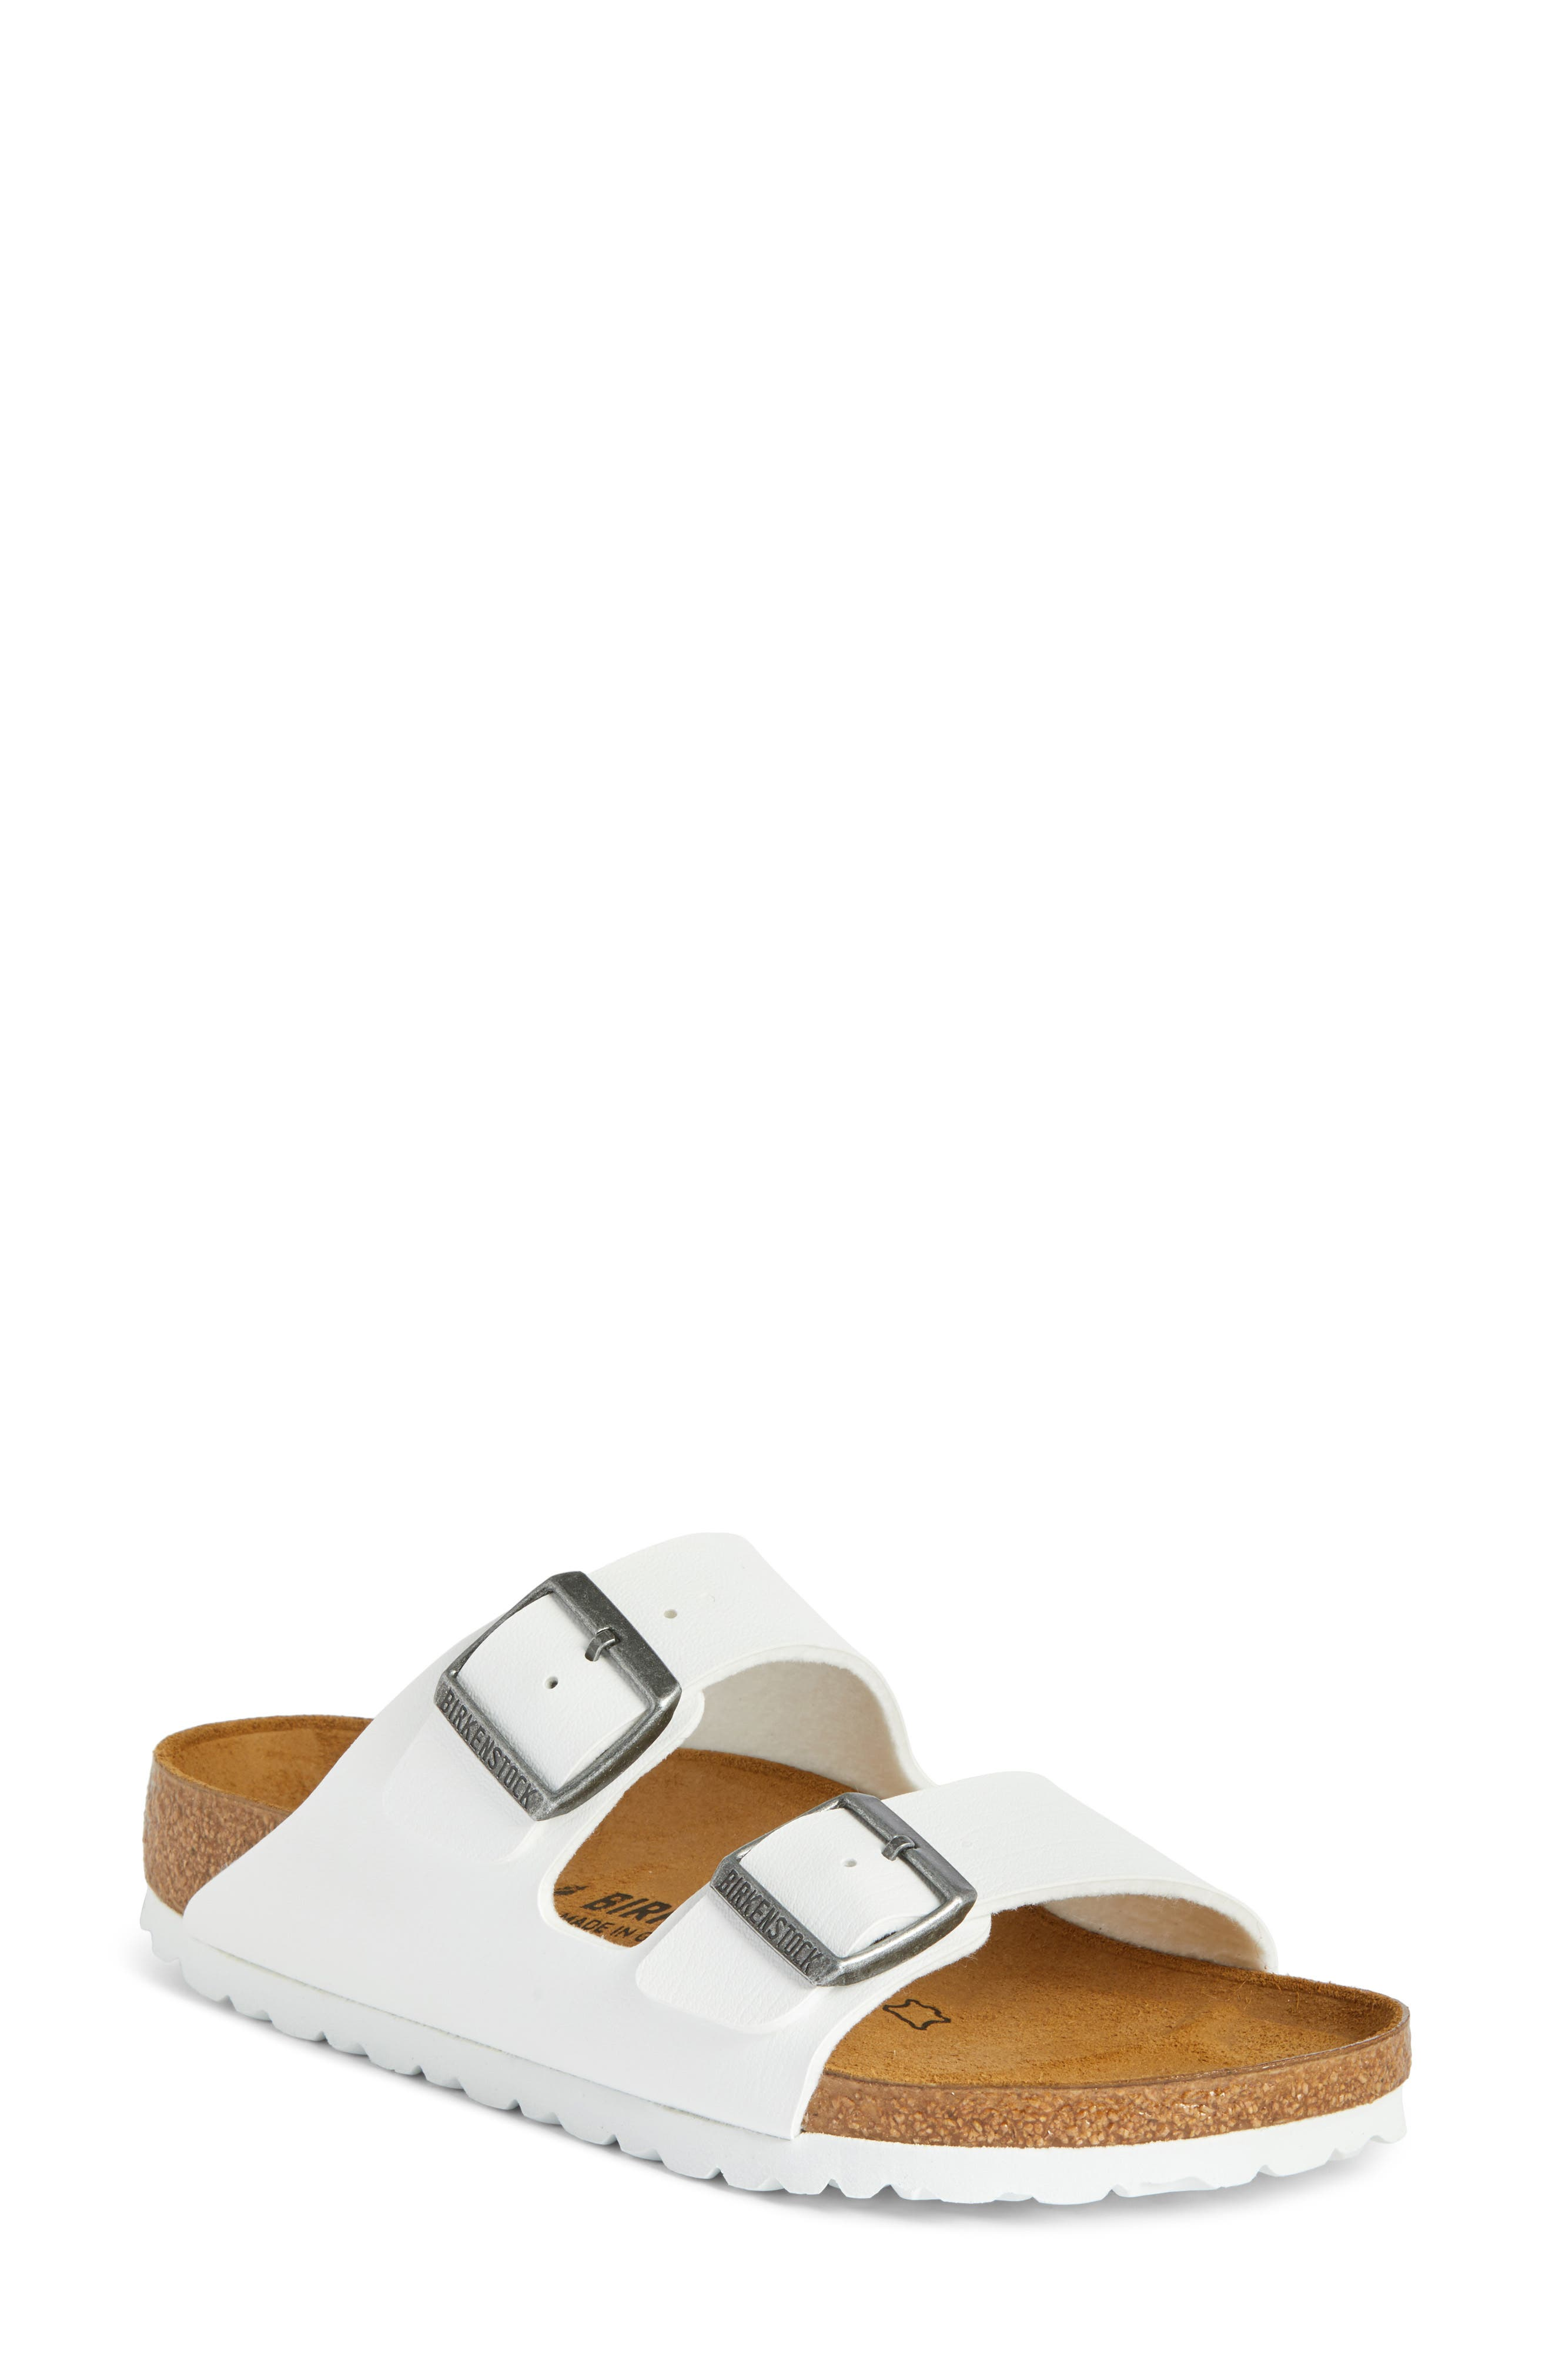 'Arizona' White Birko-Flor Sandal,                             Alternate thumbnail 2, color,                             WHITE SYNTHETIC LEATHER